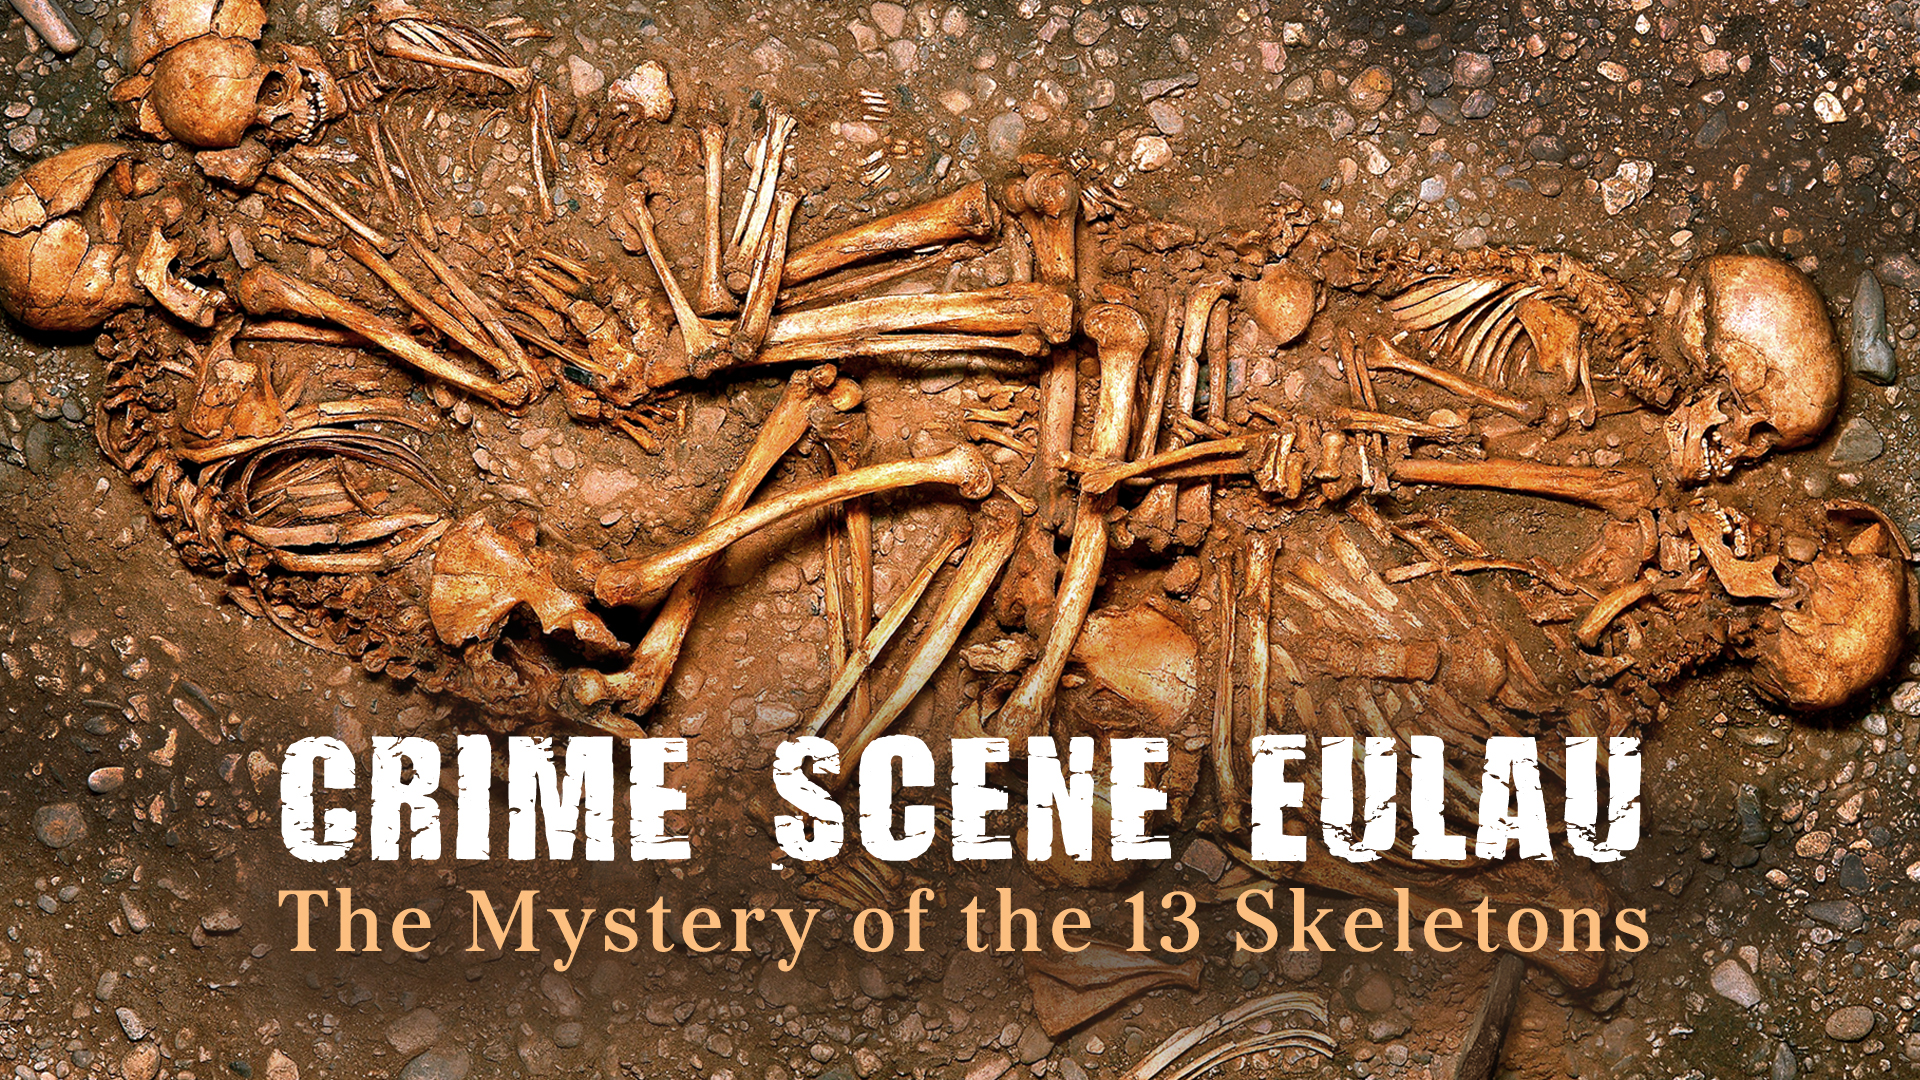 Crime Scene Eulau - The Mystery of the 13 Skeletons